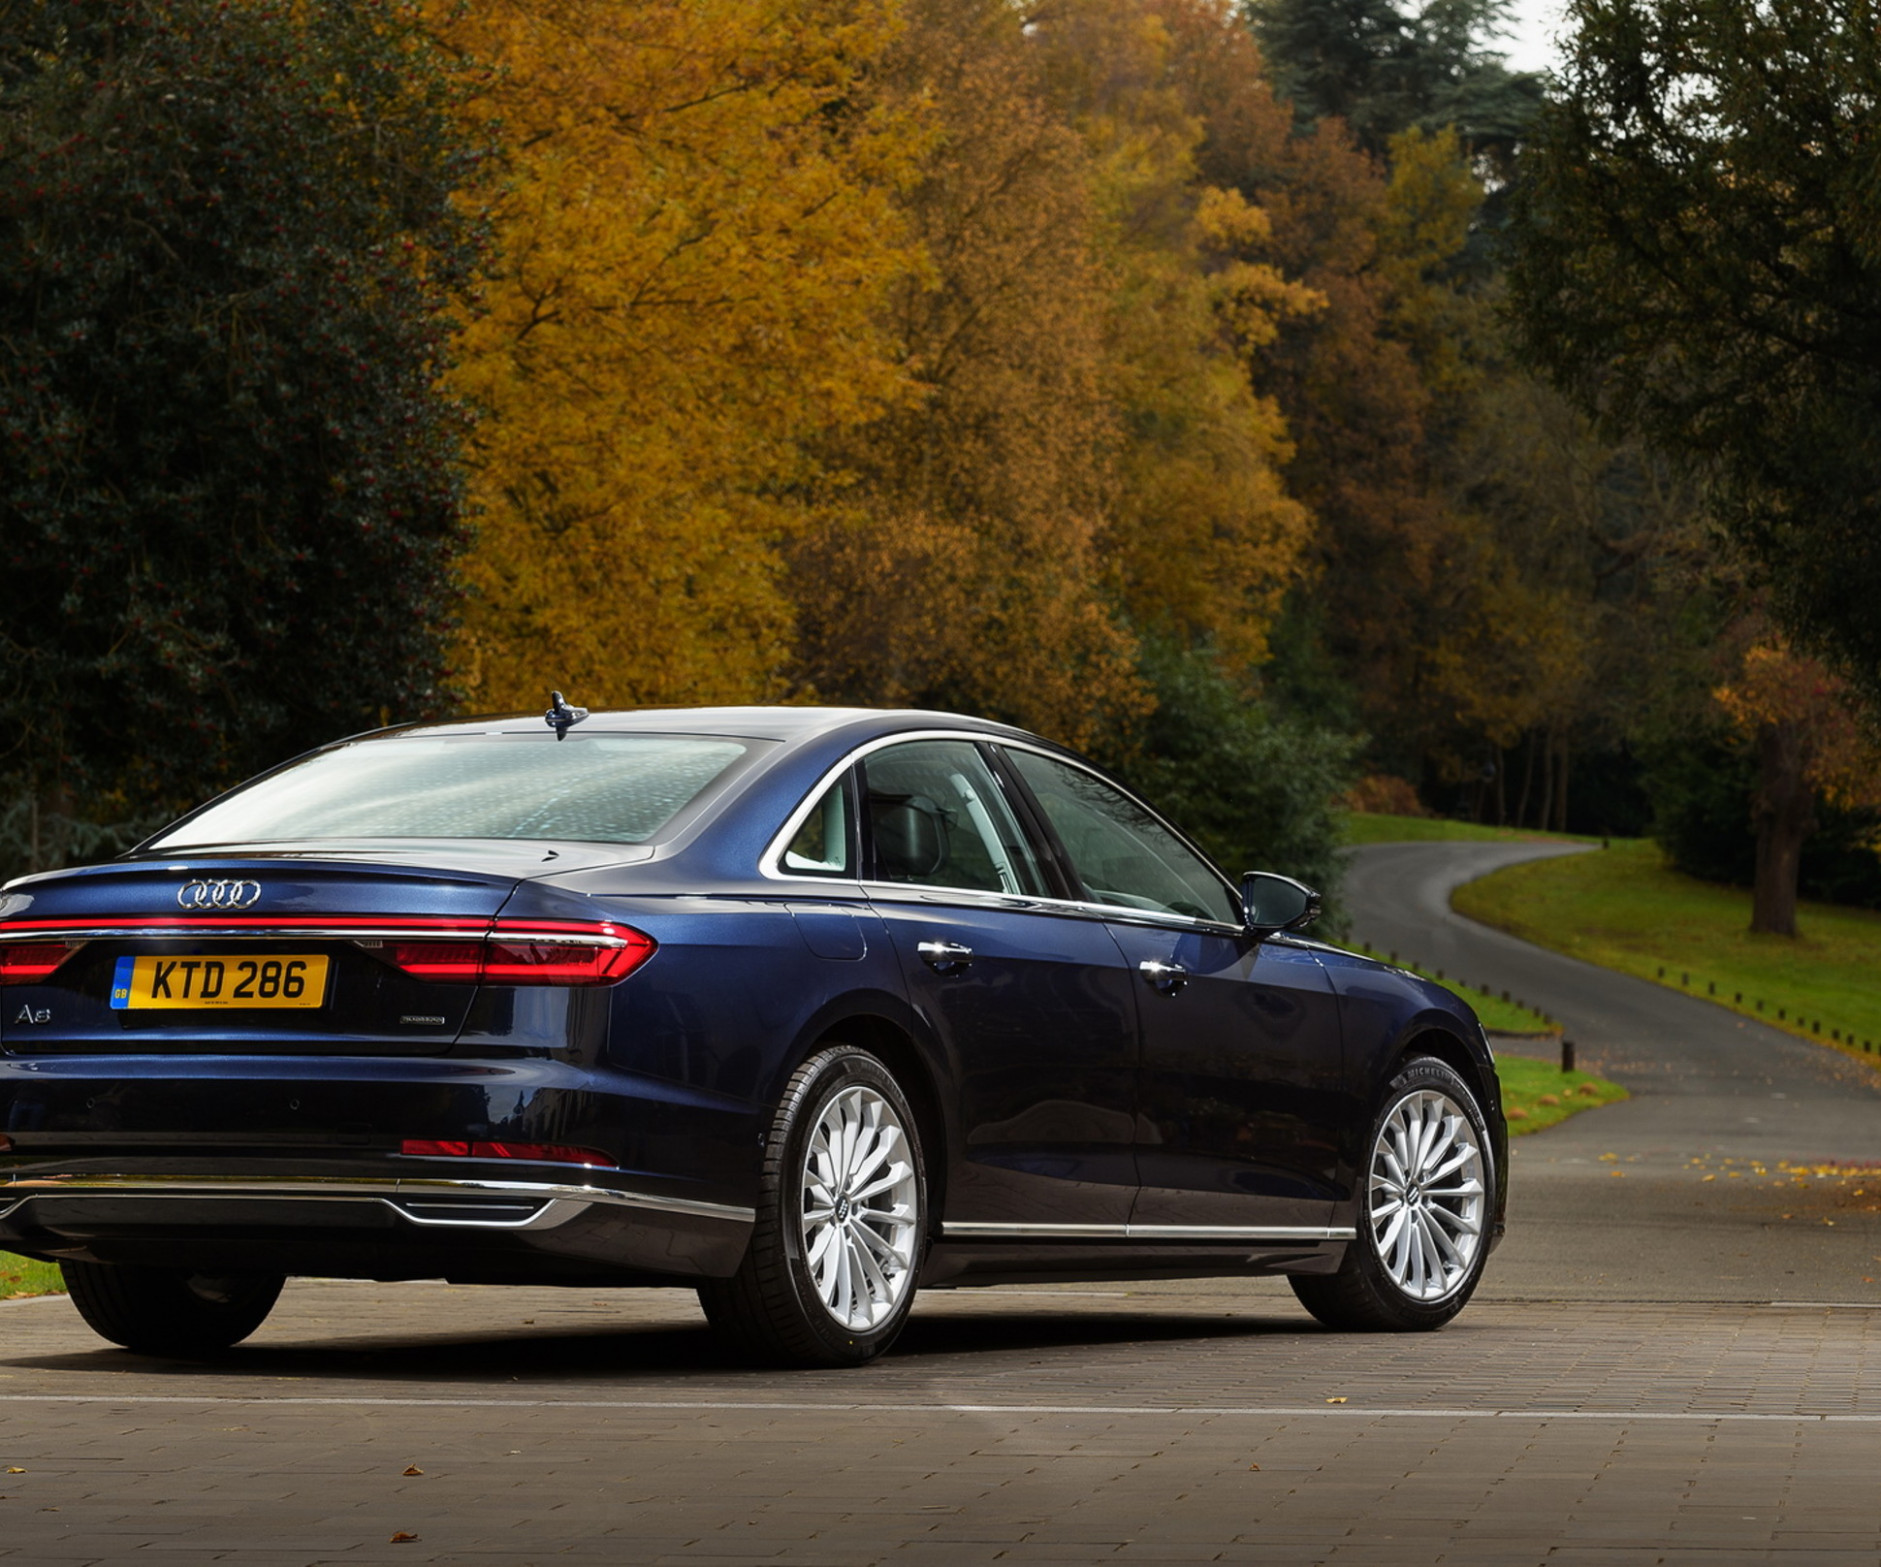 Redesign and Concept Audi A8 2022